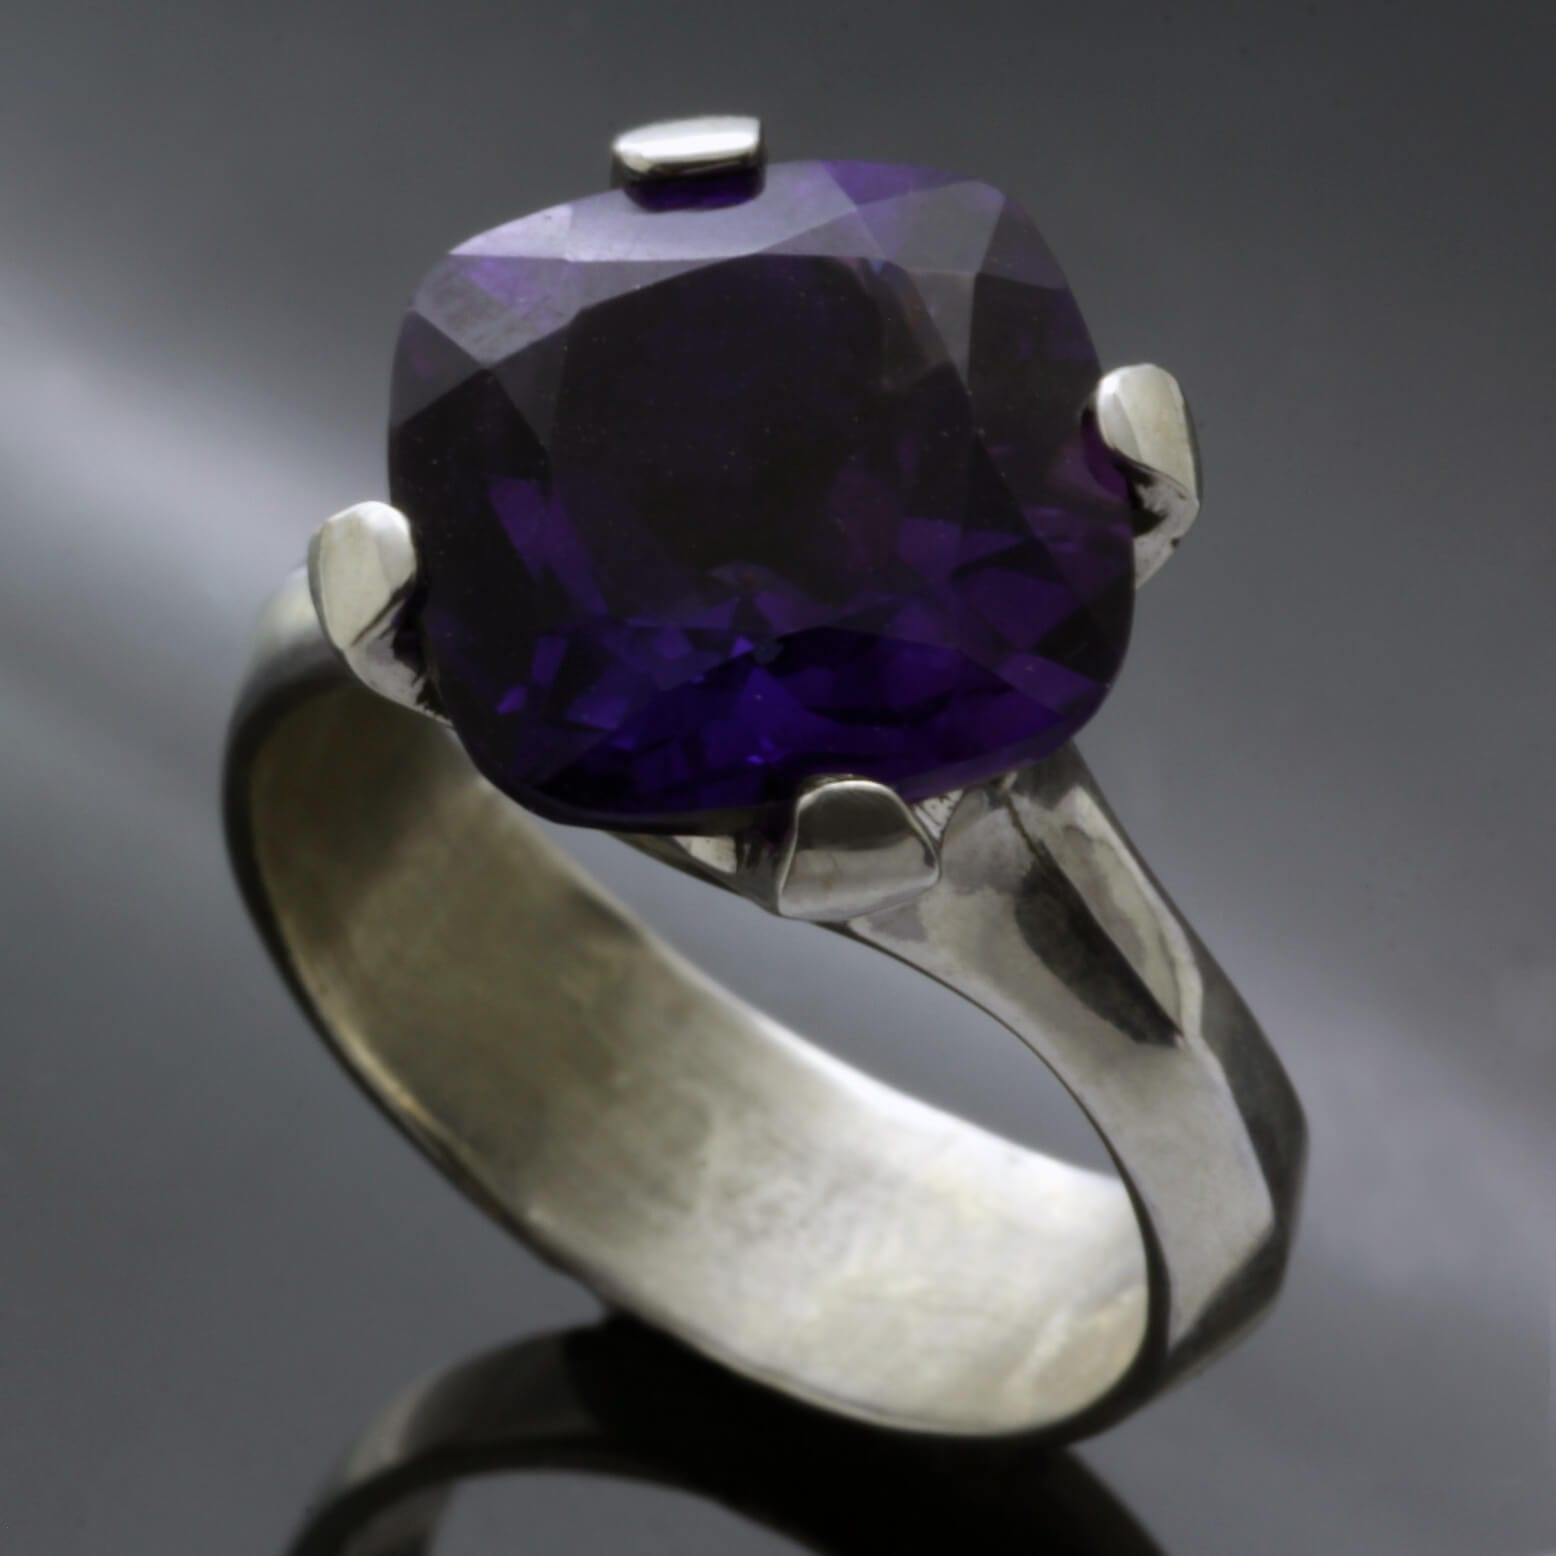 Modern handmade gemstone dress ring Cushion cut Amethyst Sterling silver